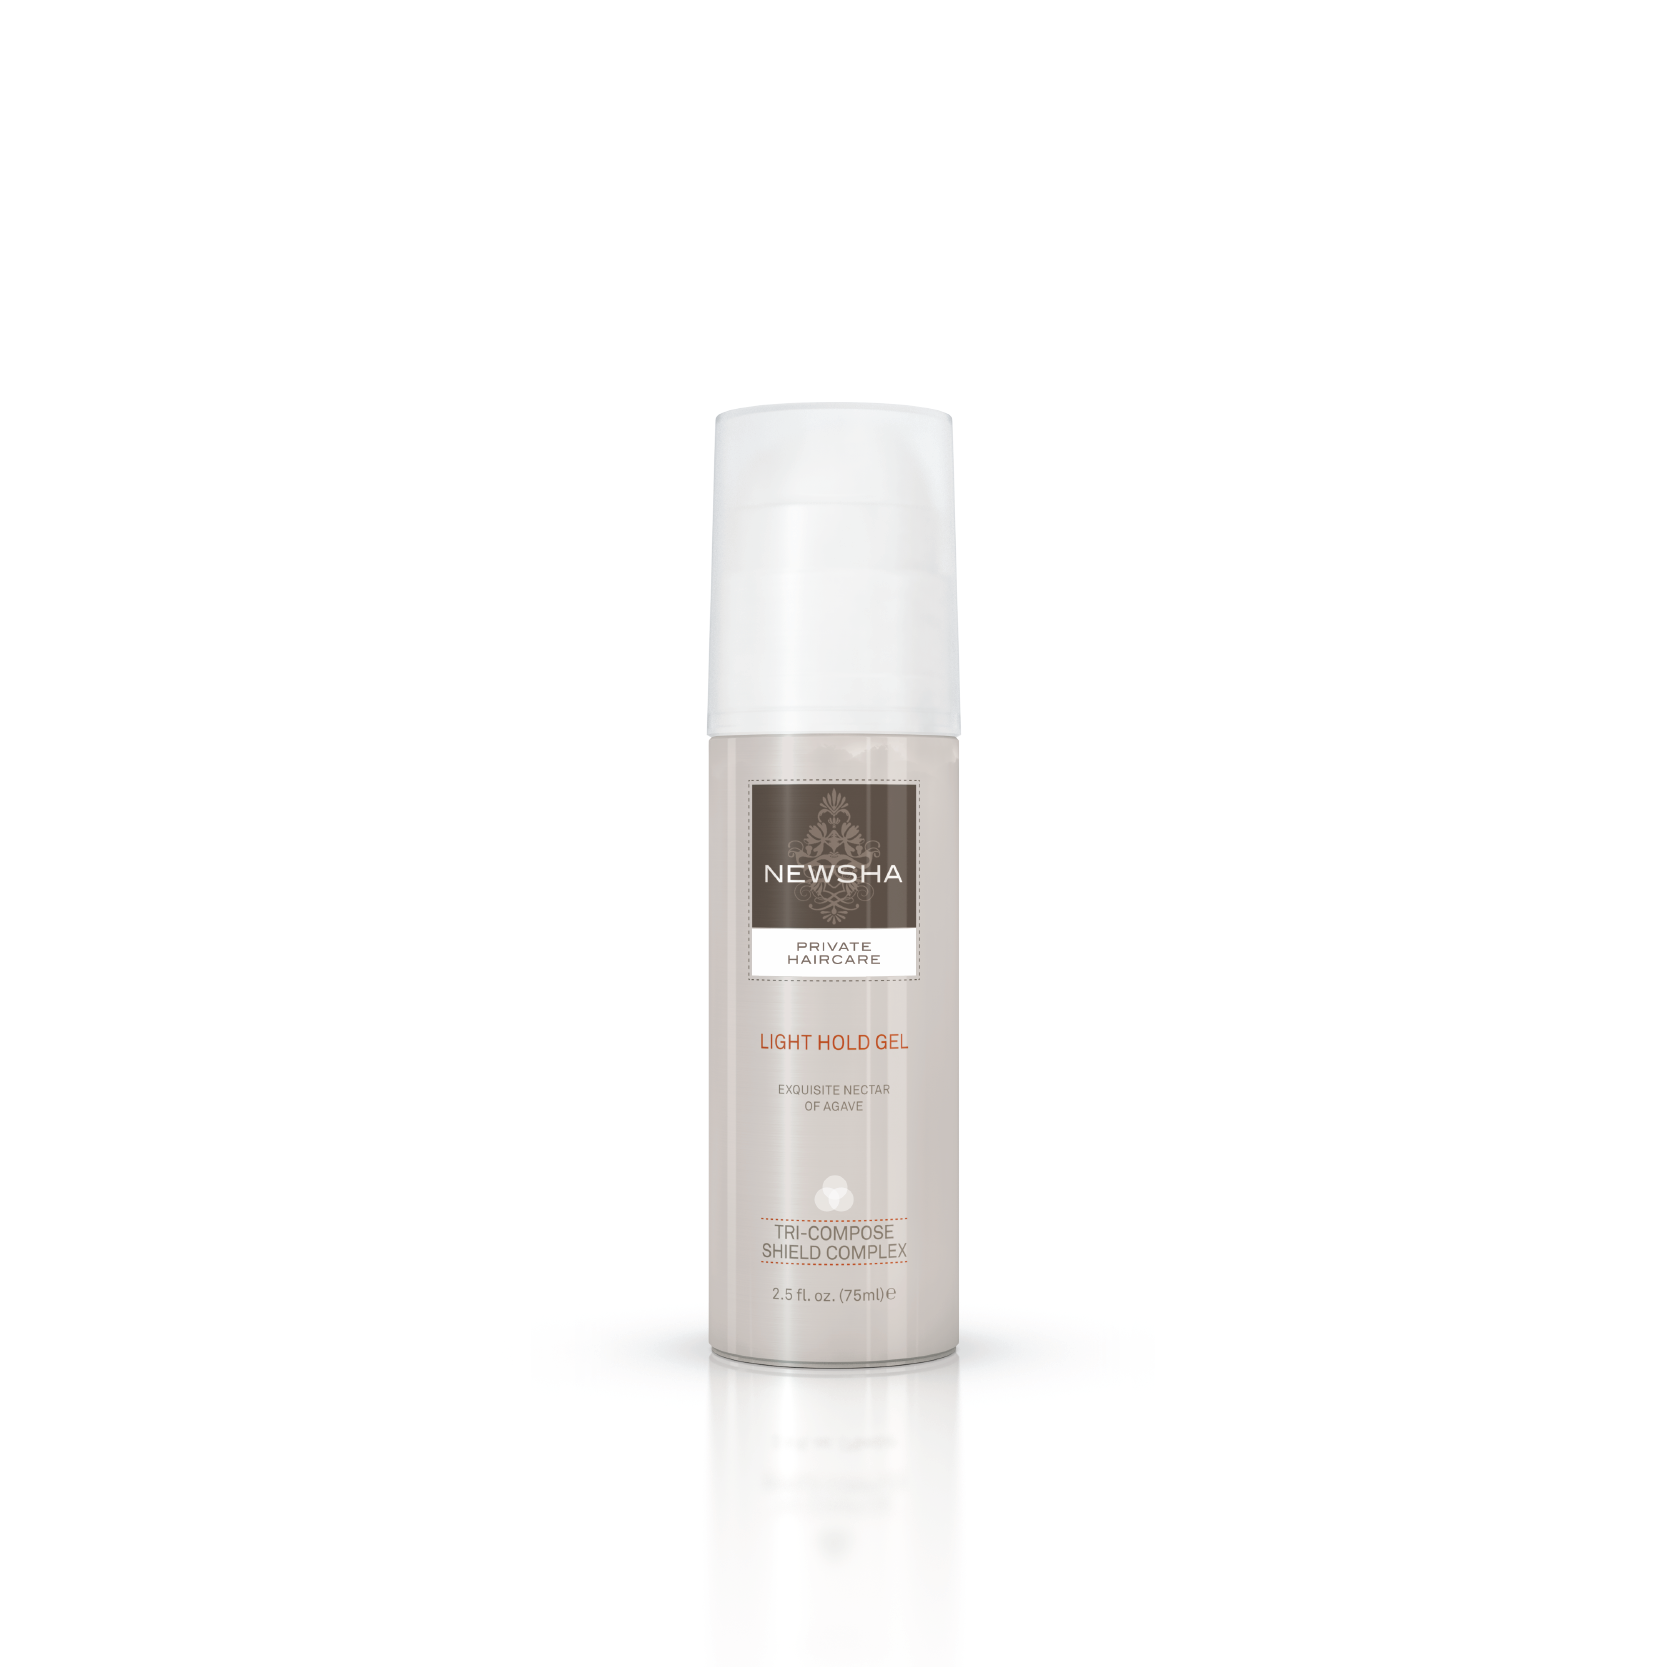 Newsha Product Shots-Light Hold Gel.png